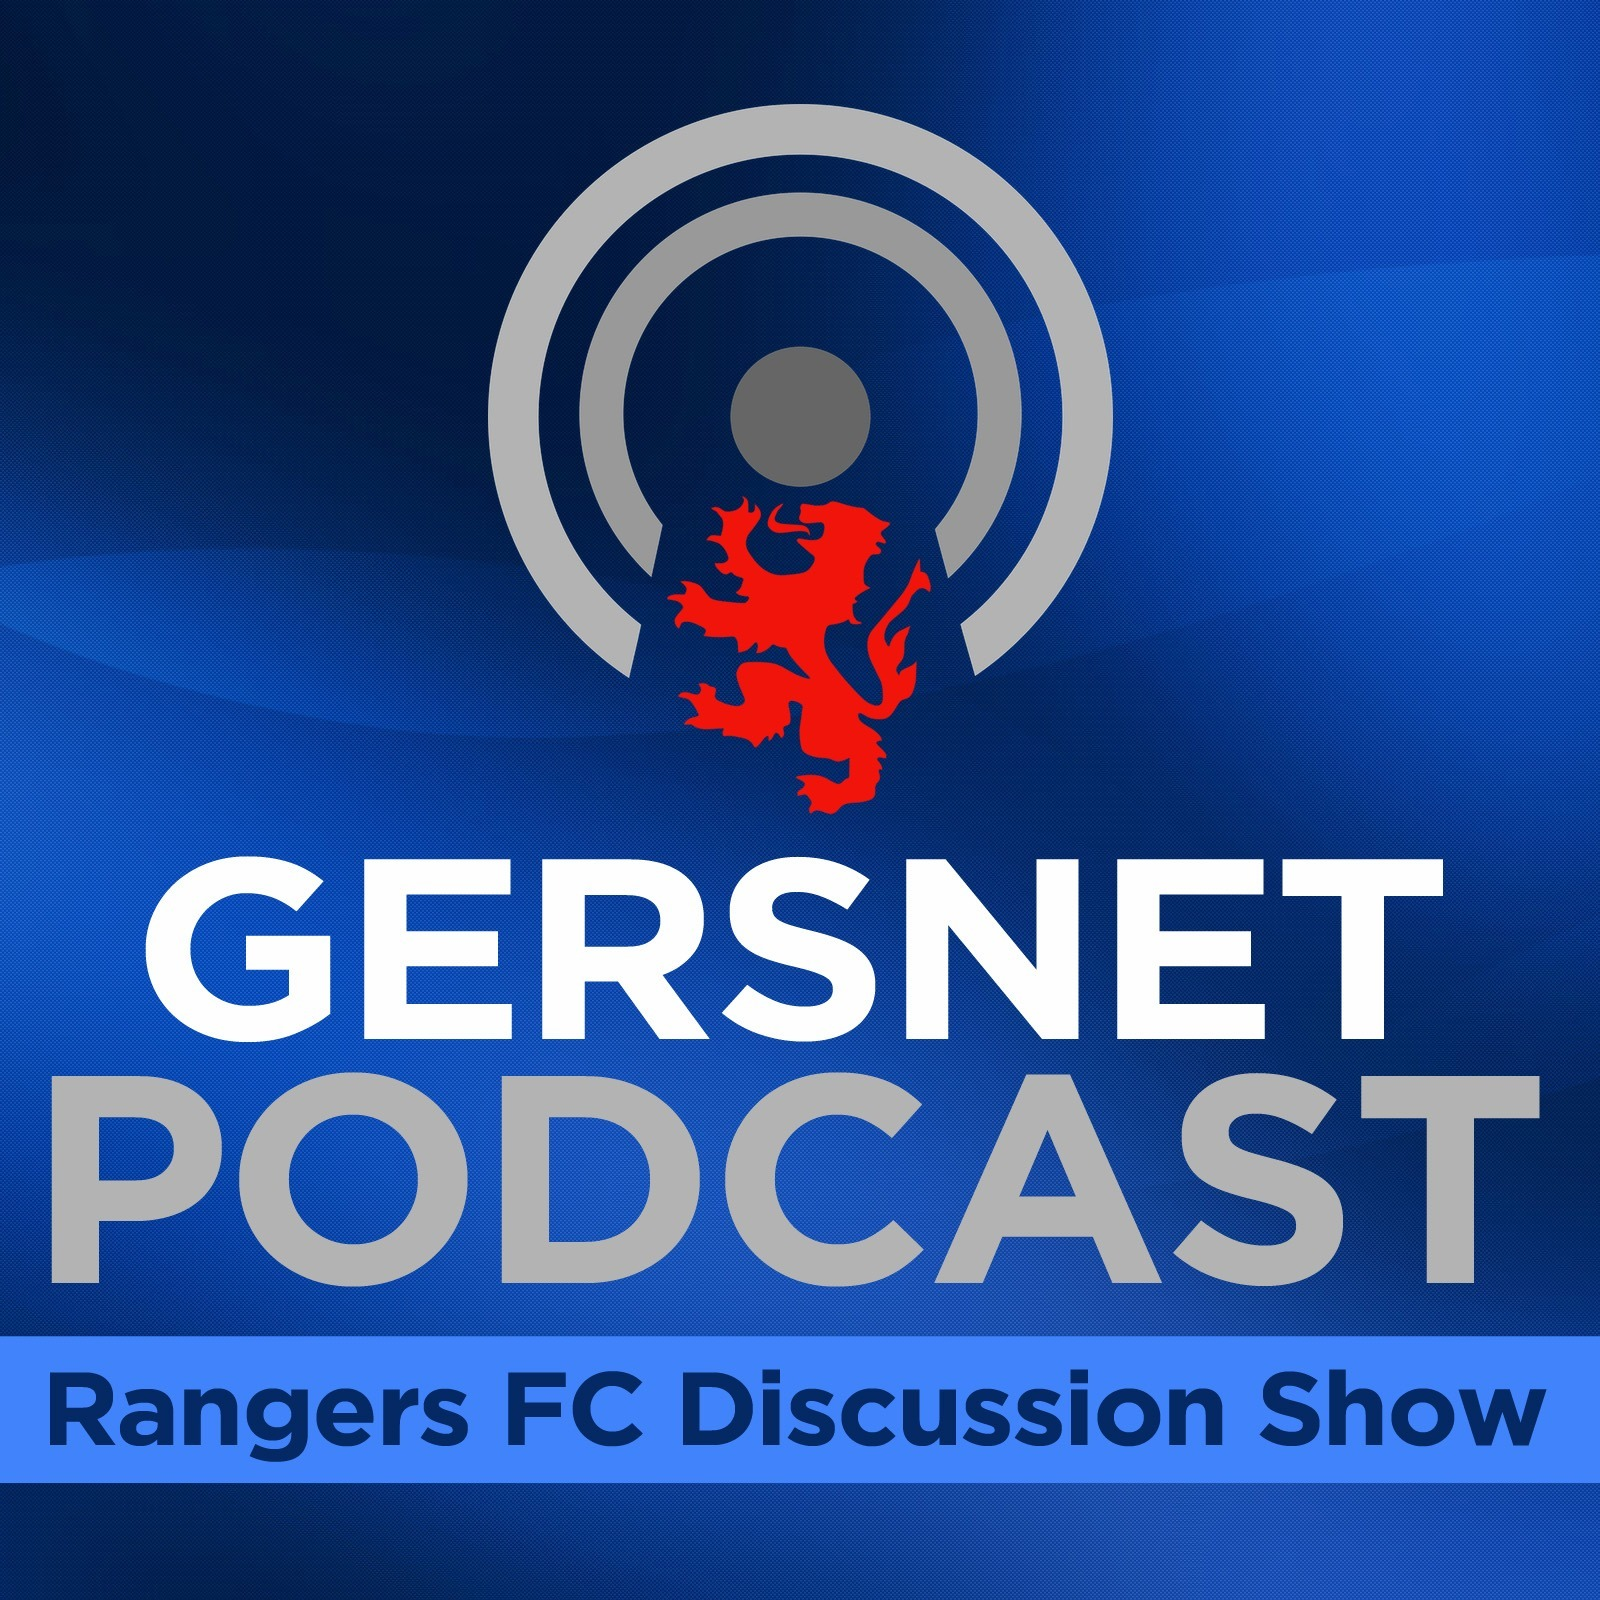 Gersnet Podcast 039 - All the Fir Park fun